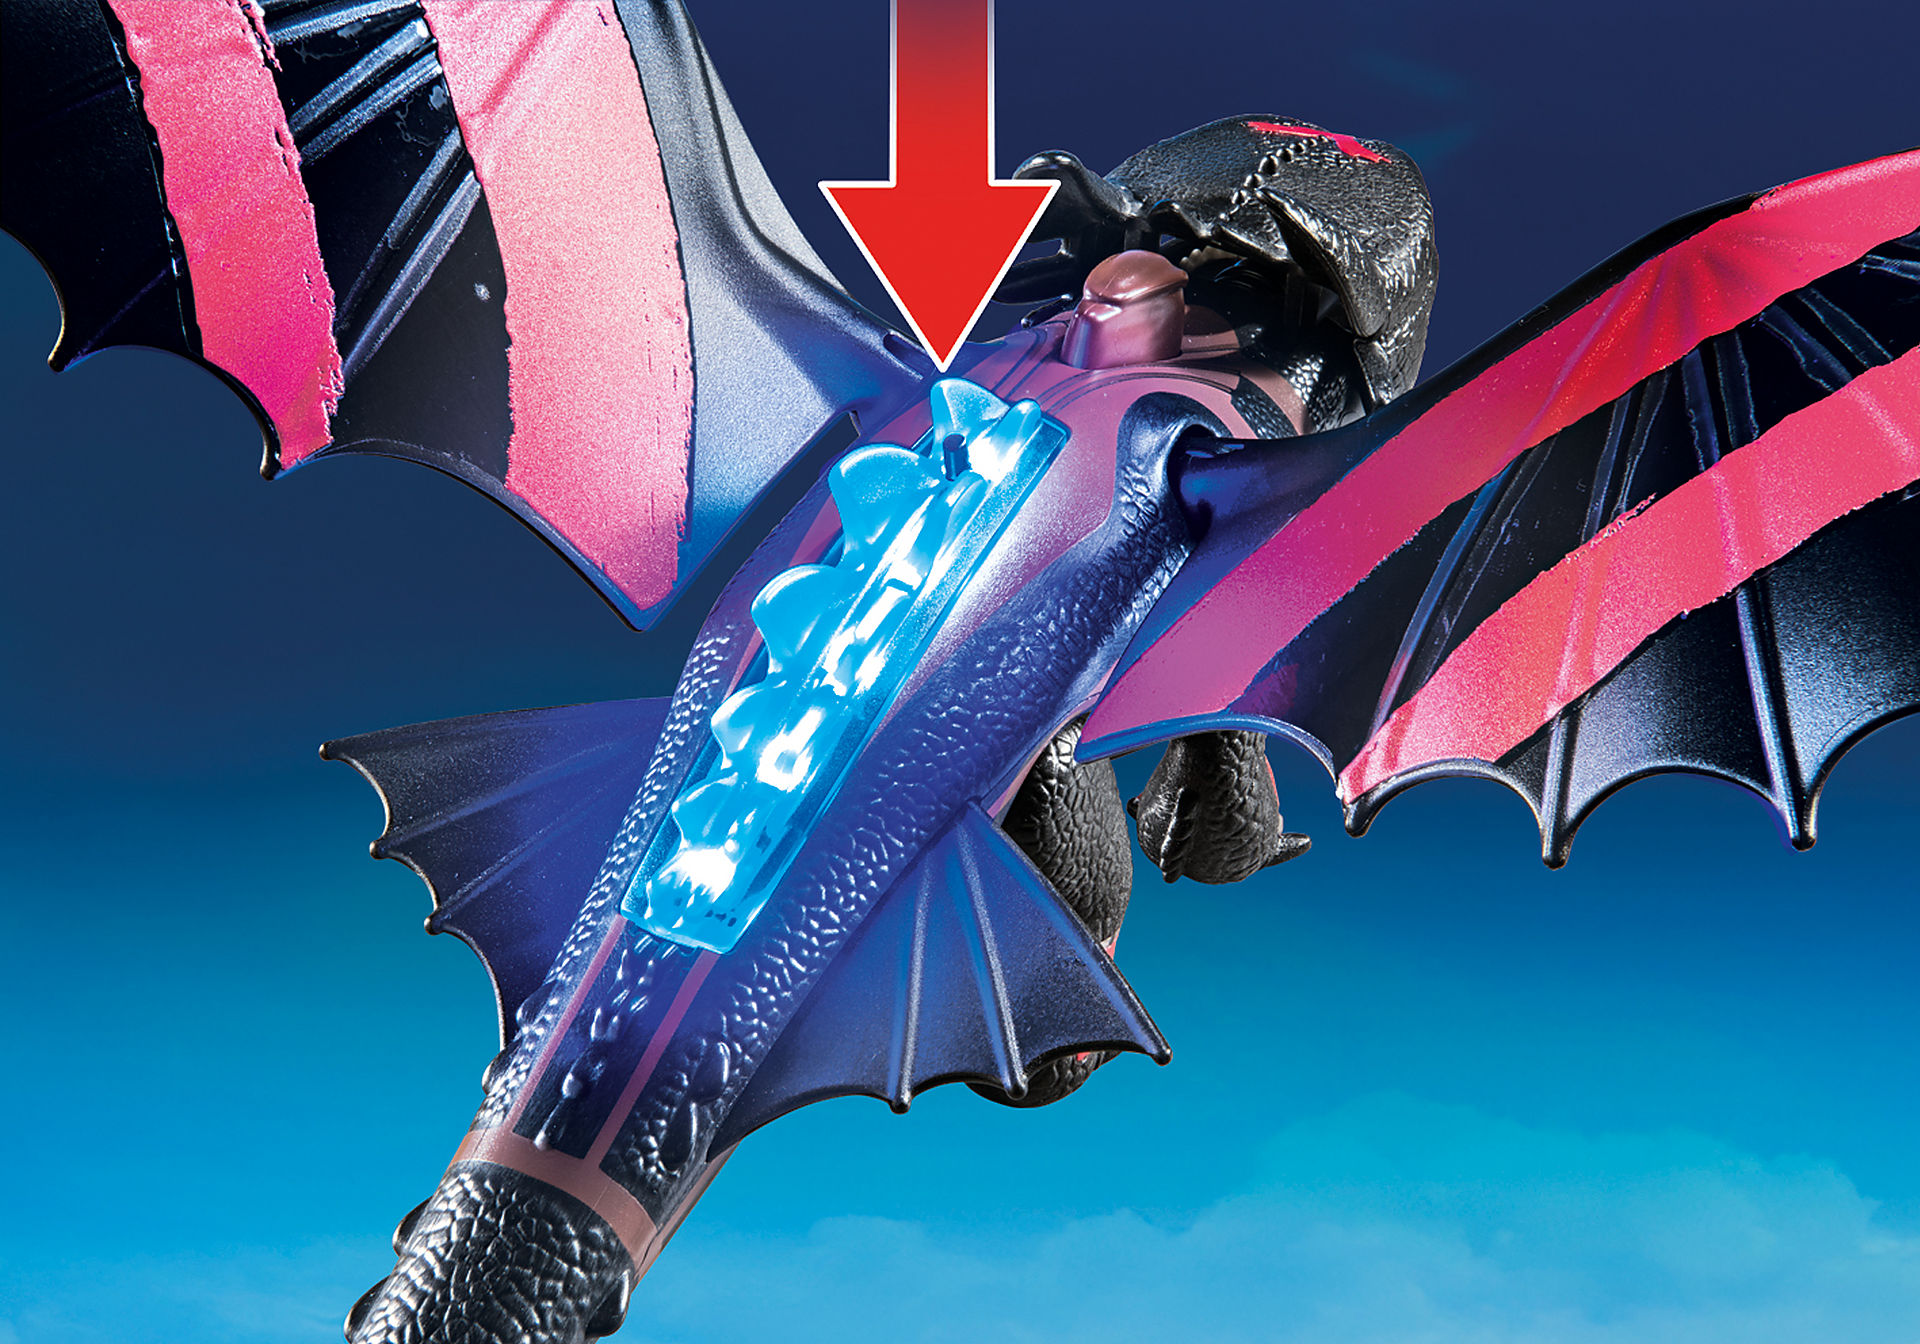 70727 Dragon Racing: Hiccup and Toothless zoom image5